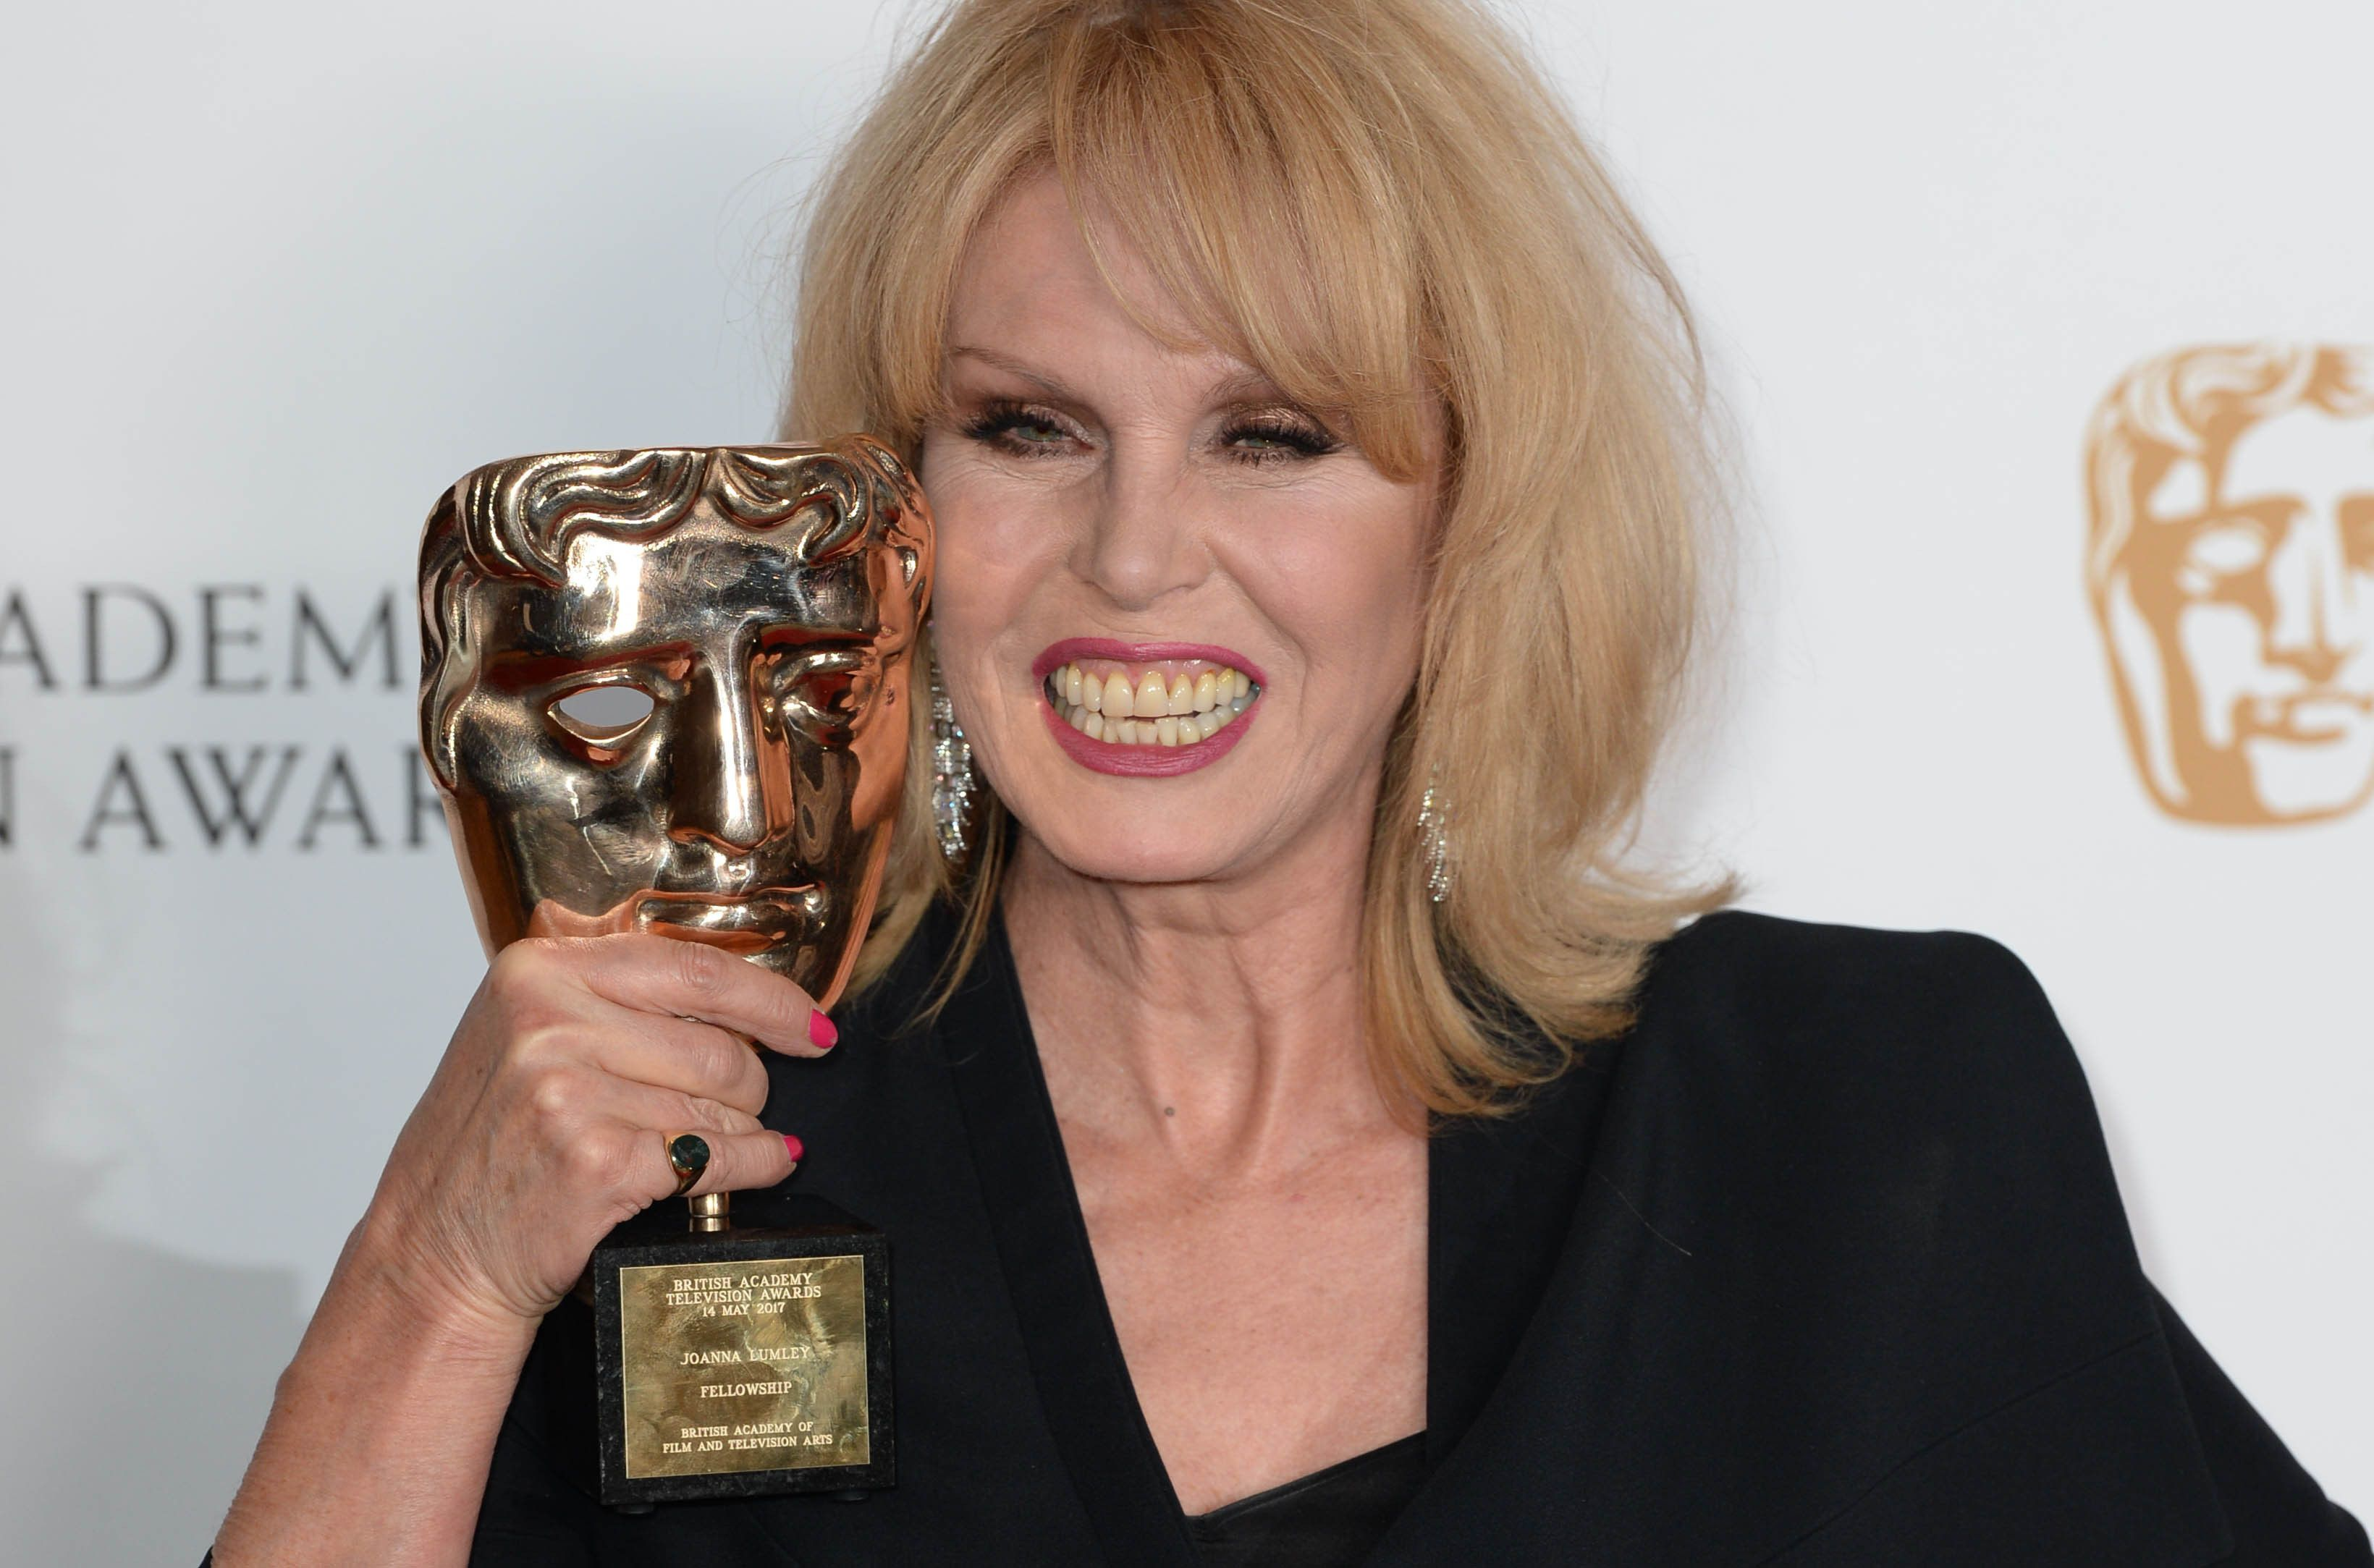 Baftas Announce Joanna Lumley As New